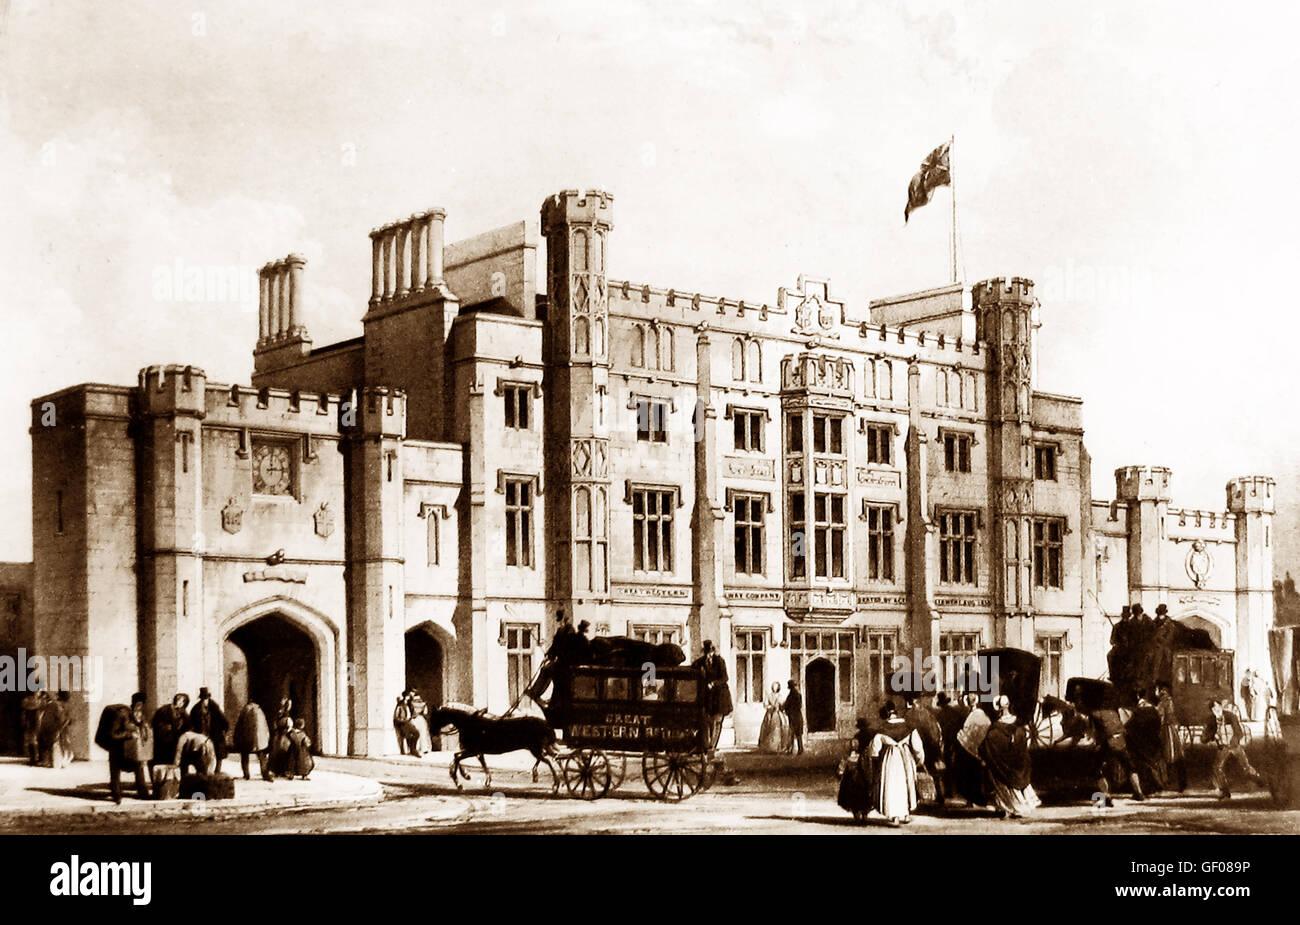 Temple Meads Railway Station, Bristol - Victorian period Stock Photo